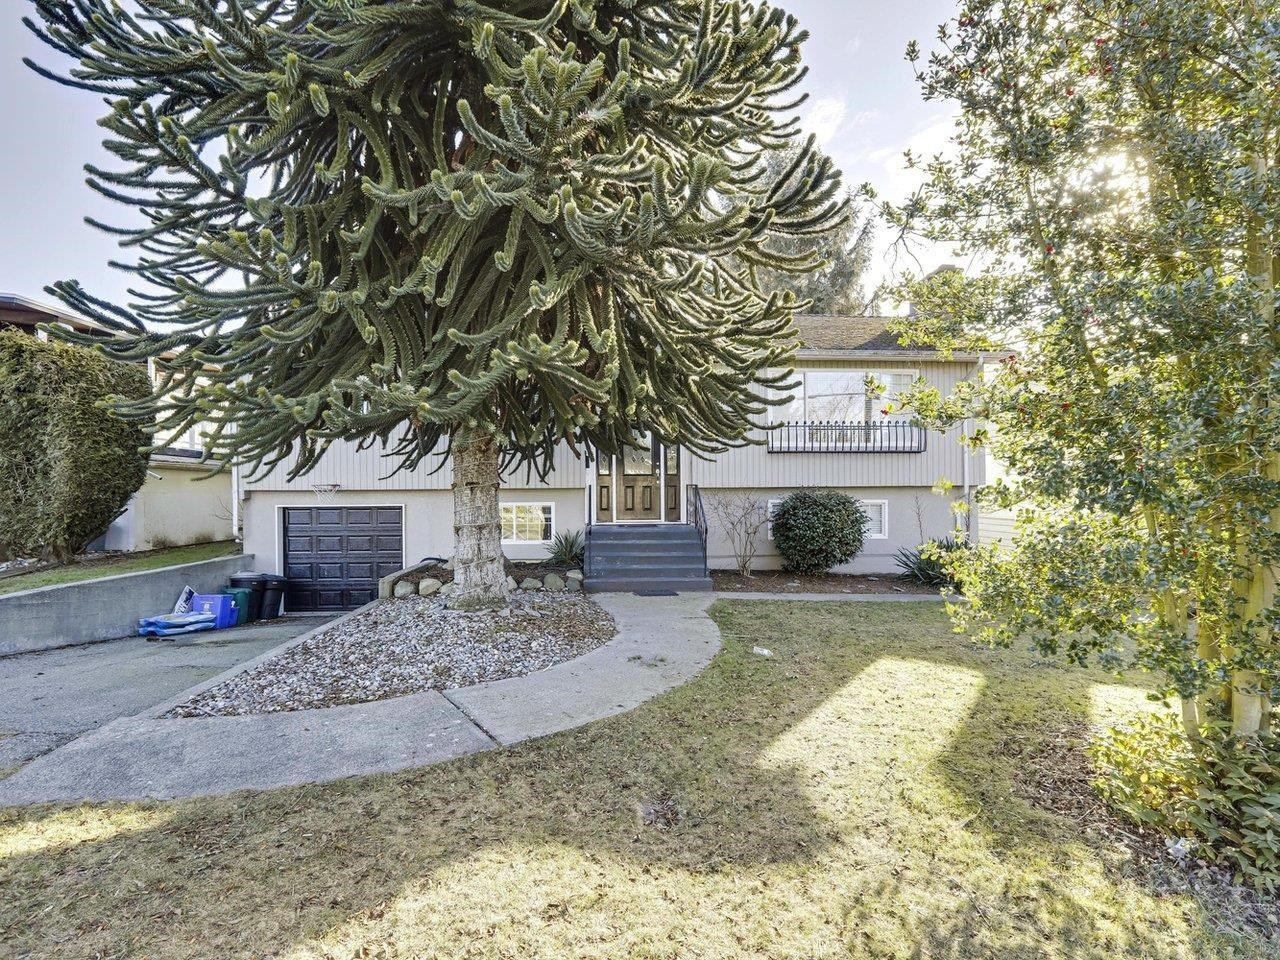 """Main Photo: 1136 HABGOOD Street: White Rock House for sale in """"EAST BEACH WHITE ROCK"""" (South Surrey White Rock)  : MLS®# R2623763"""